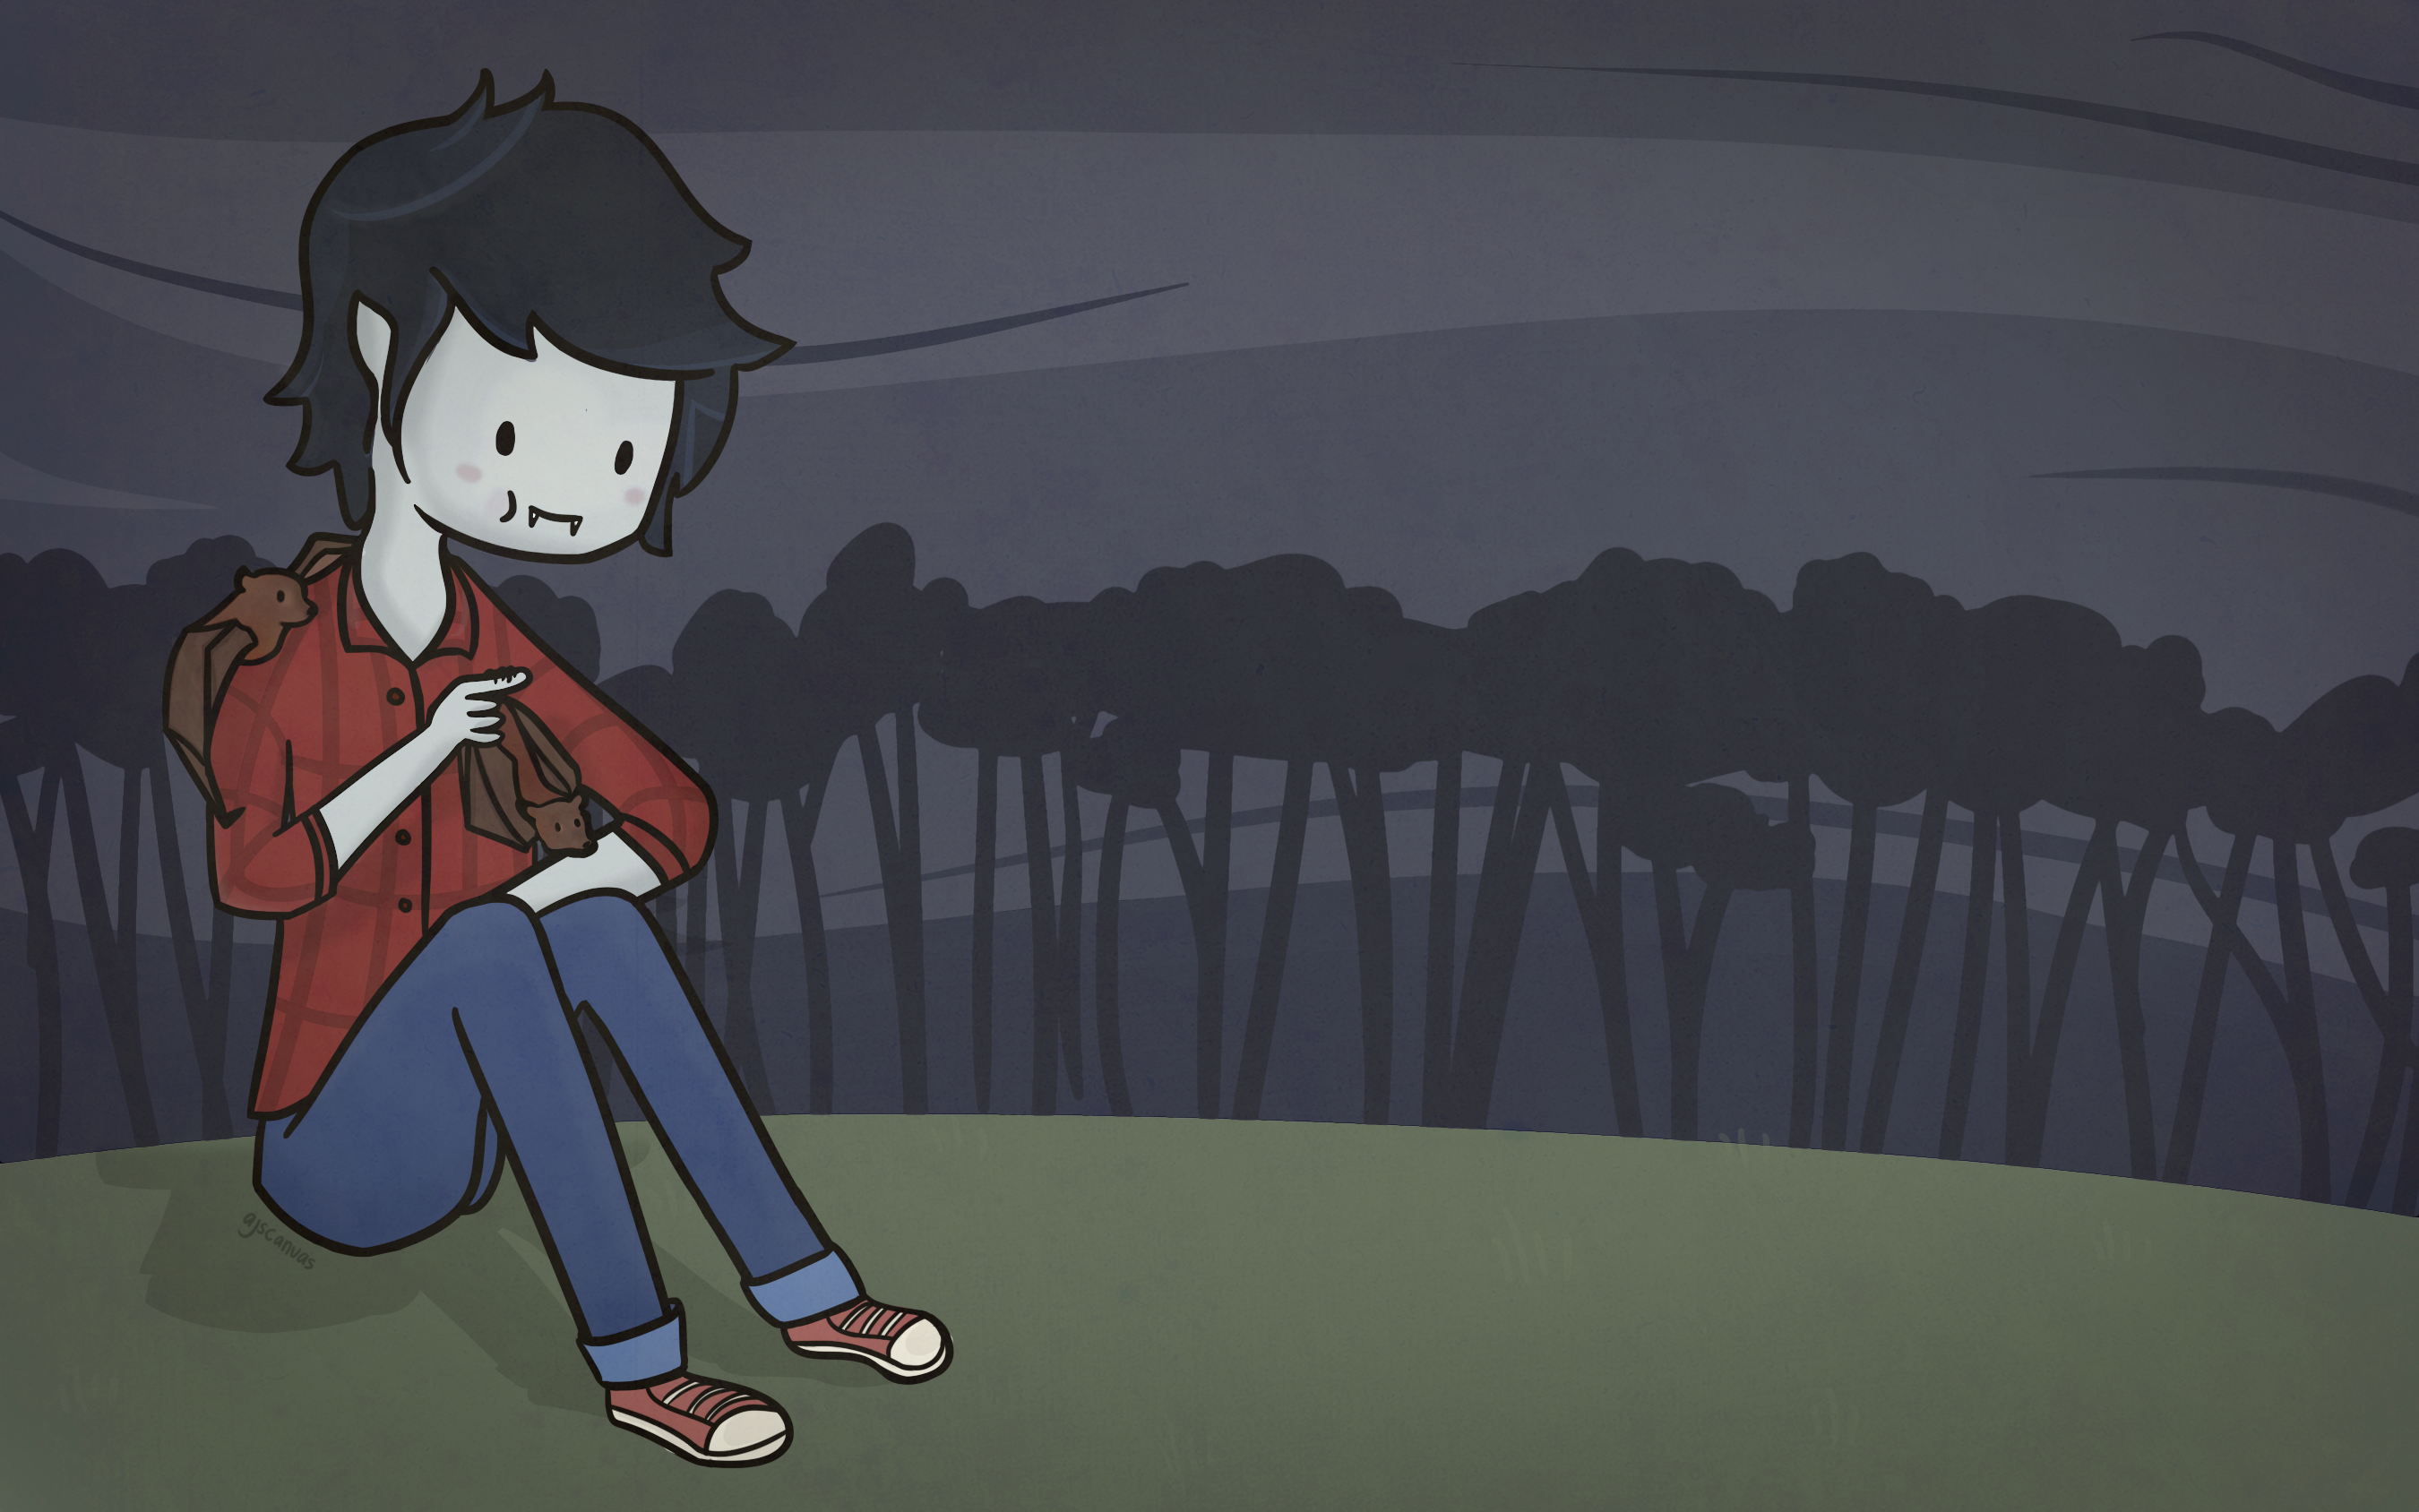 marshall lee wallpaper by ajscanvas on deviantart marshall lee wallpaper by ajscanvas on